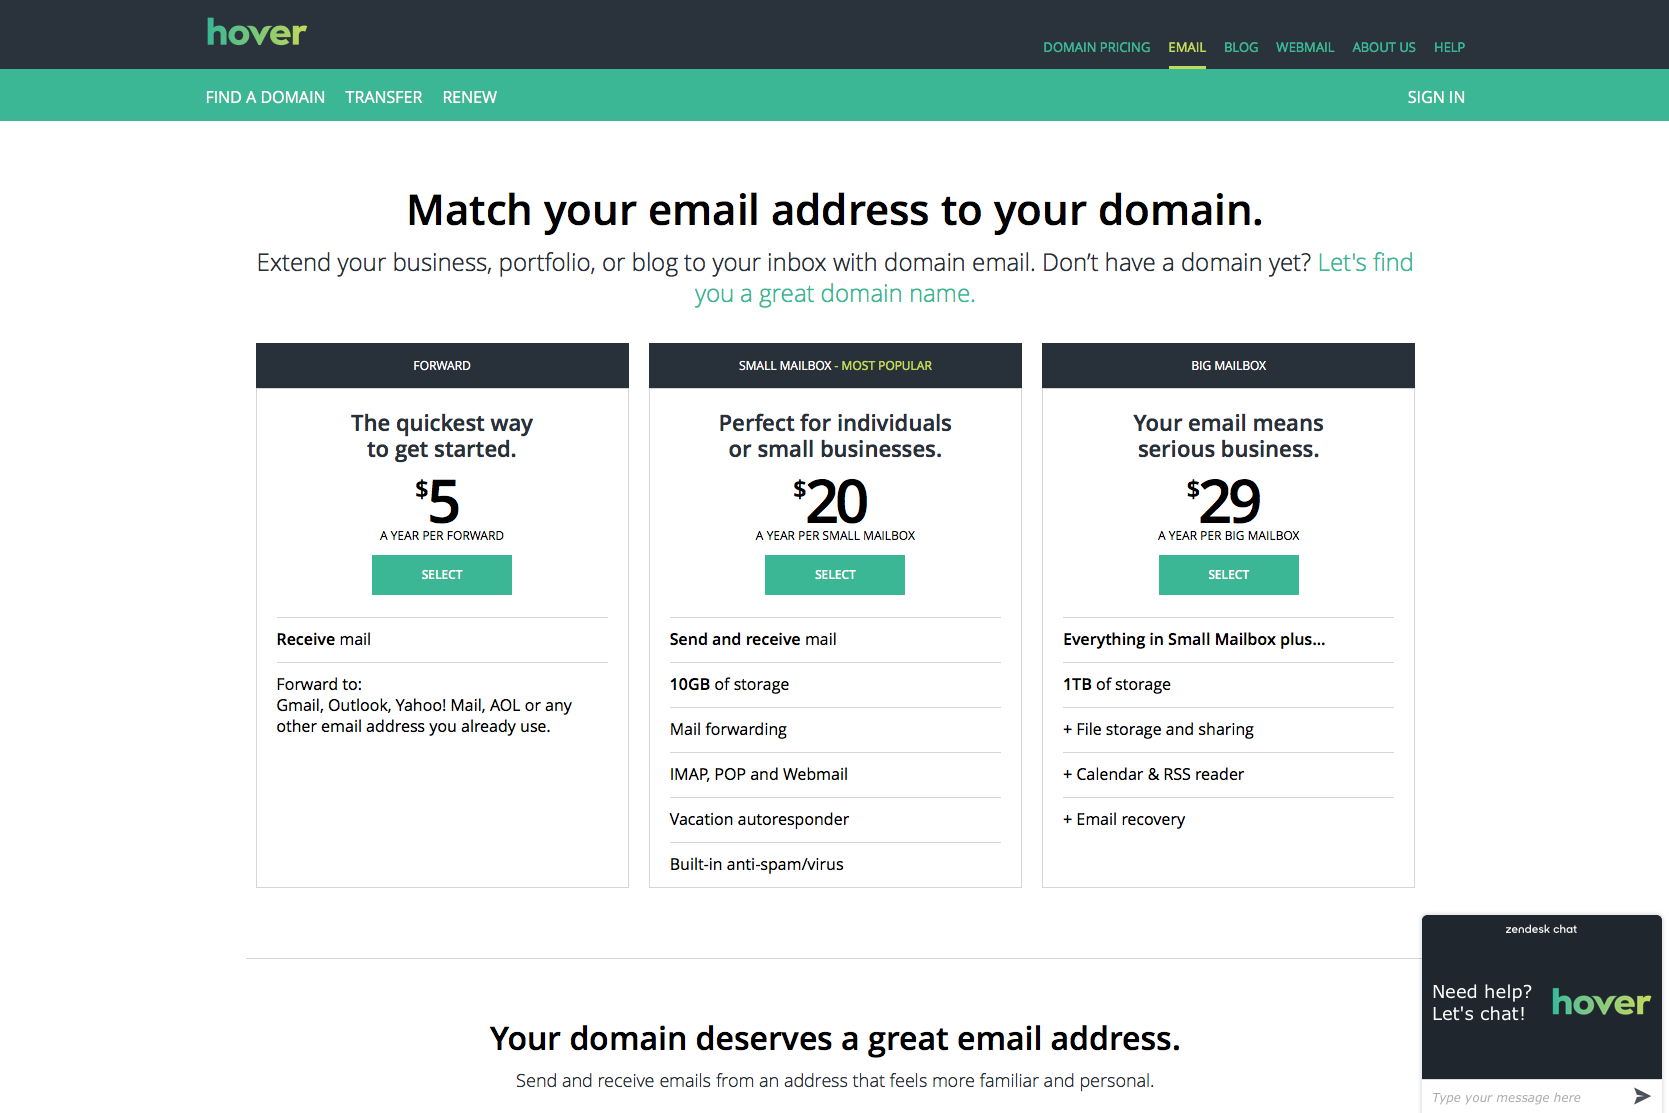 Hover Demo - Domain e-mail page